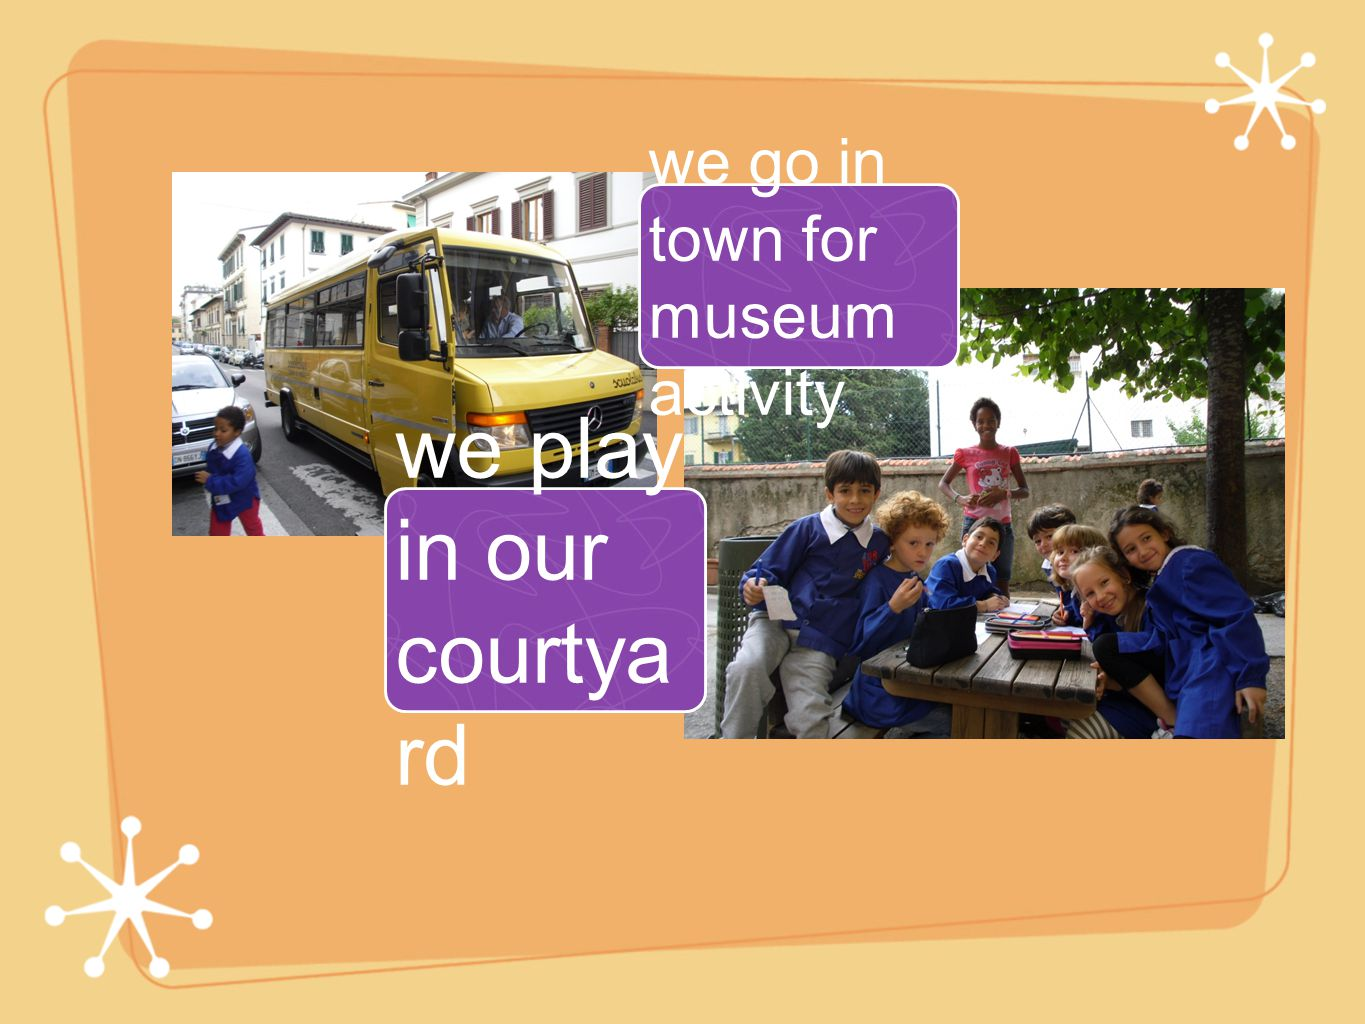 we go in town for museum activity we play in our courtya rd